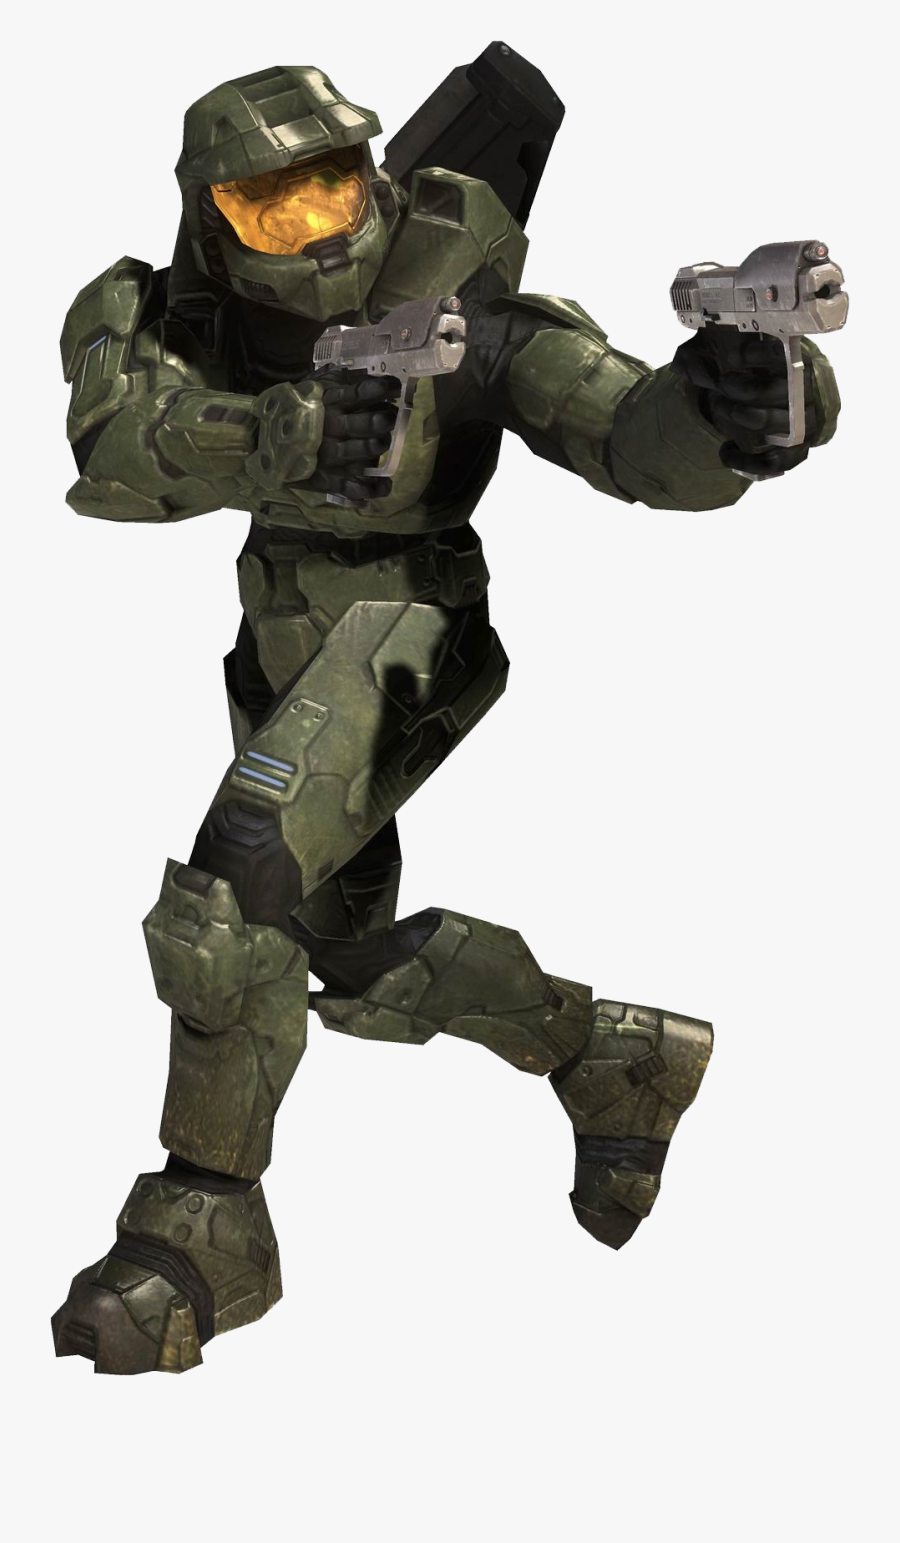 Halo Spartan Png Halo Master Chief Halo 3 Free